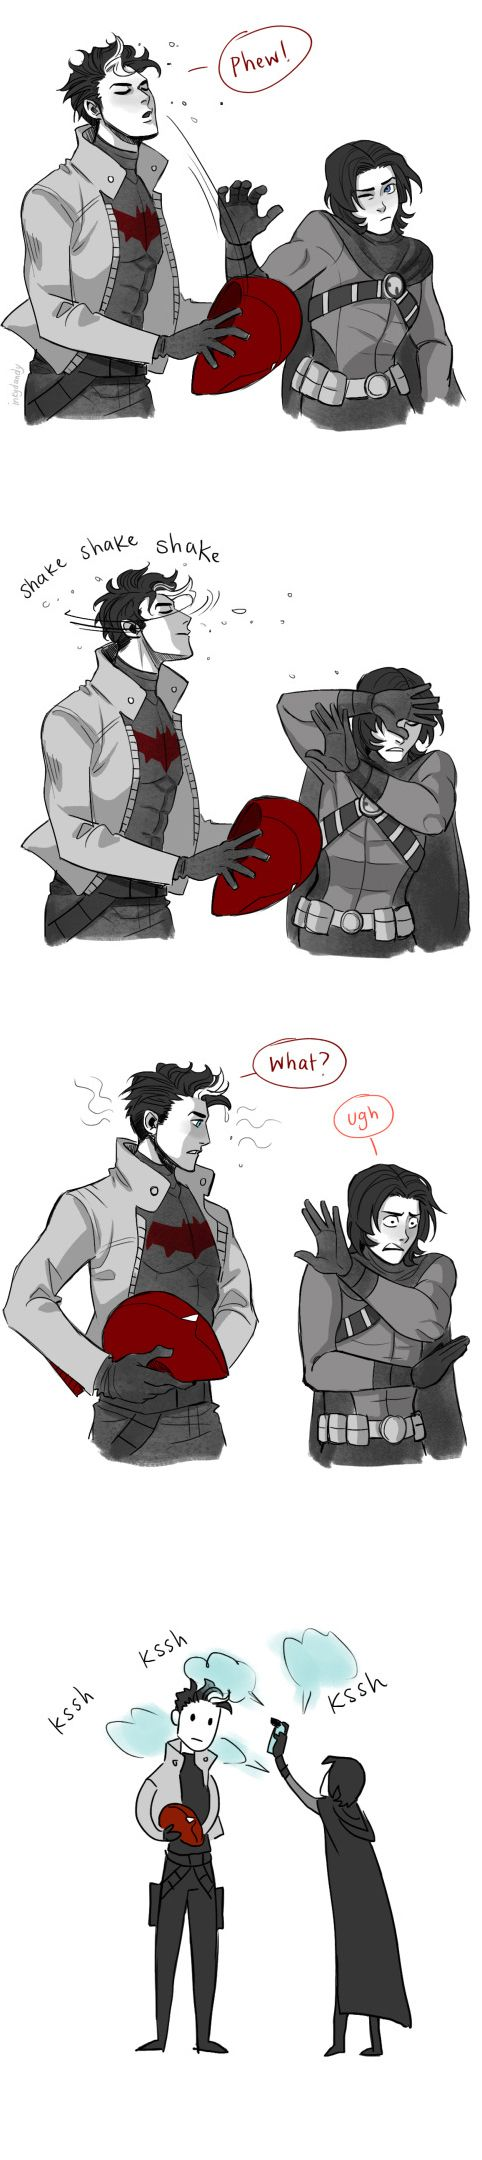 Jason and Tim by inkydandy Yup,Jason is very canine like.He's too wild to be tame like a dog,so he's more like a wolf.It even matches the Red Hood biker theme,Red Riding Hood.